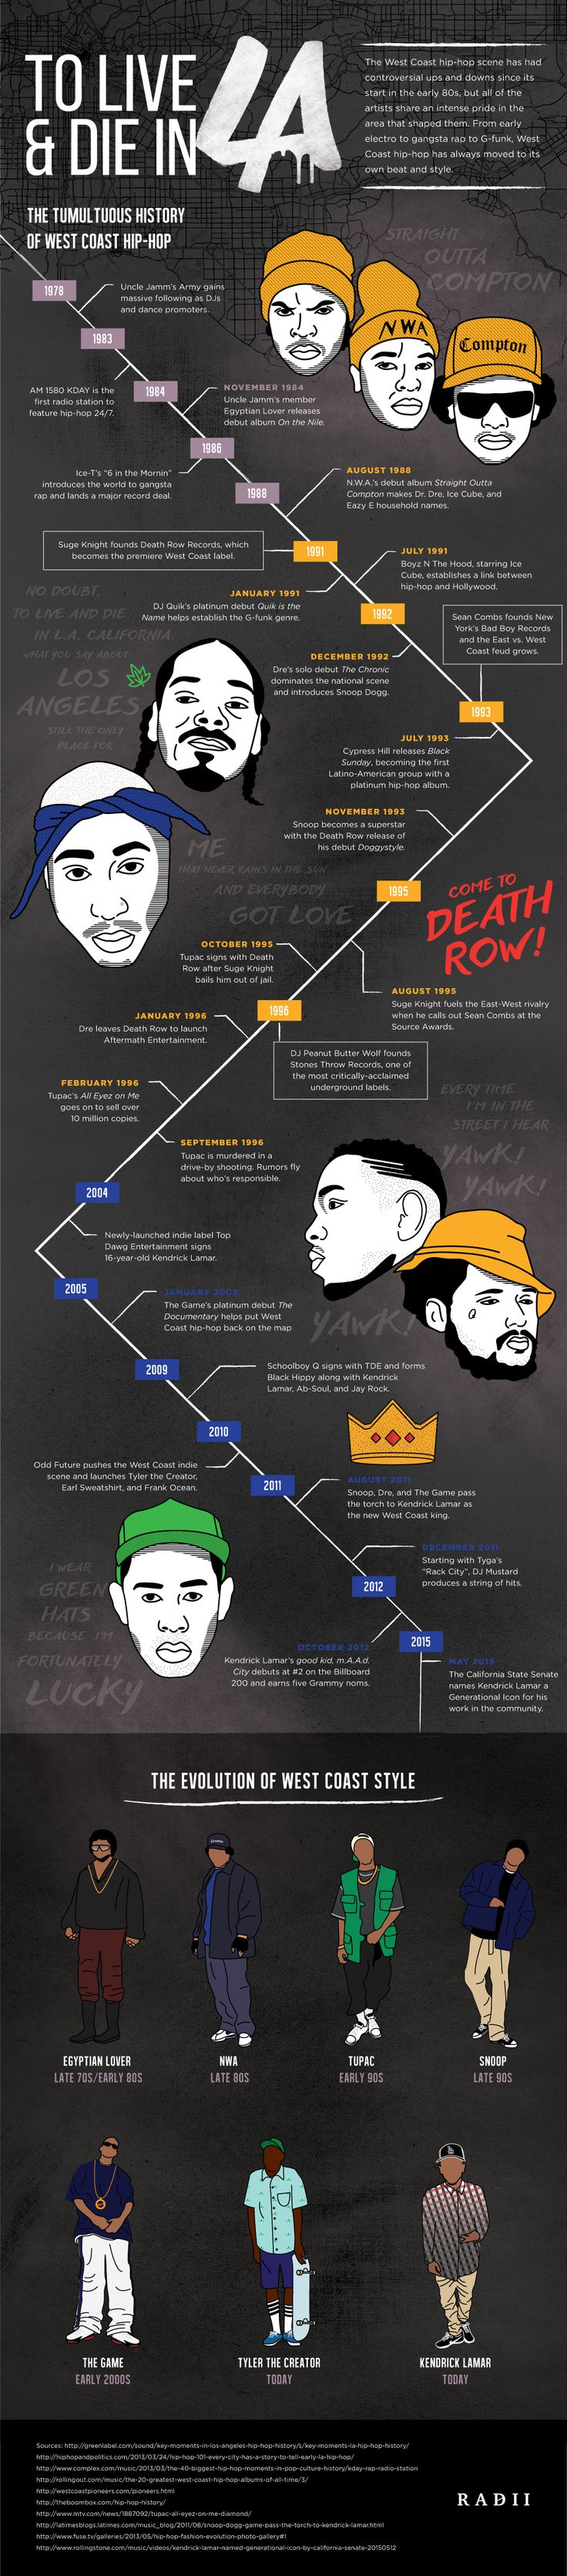 With the world going Straight Outta Compton crazy, this graphic will improve your West coast hip-hop knowledge